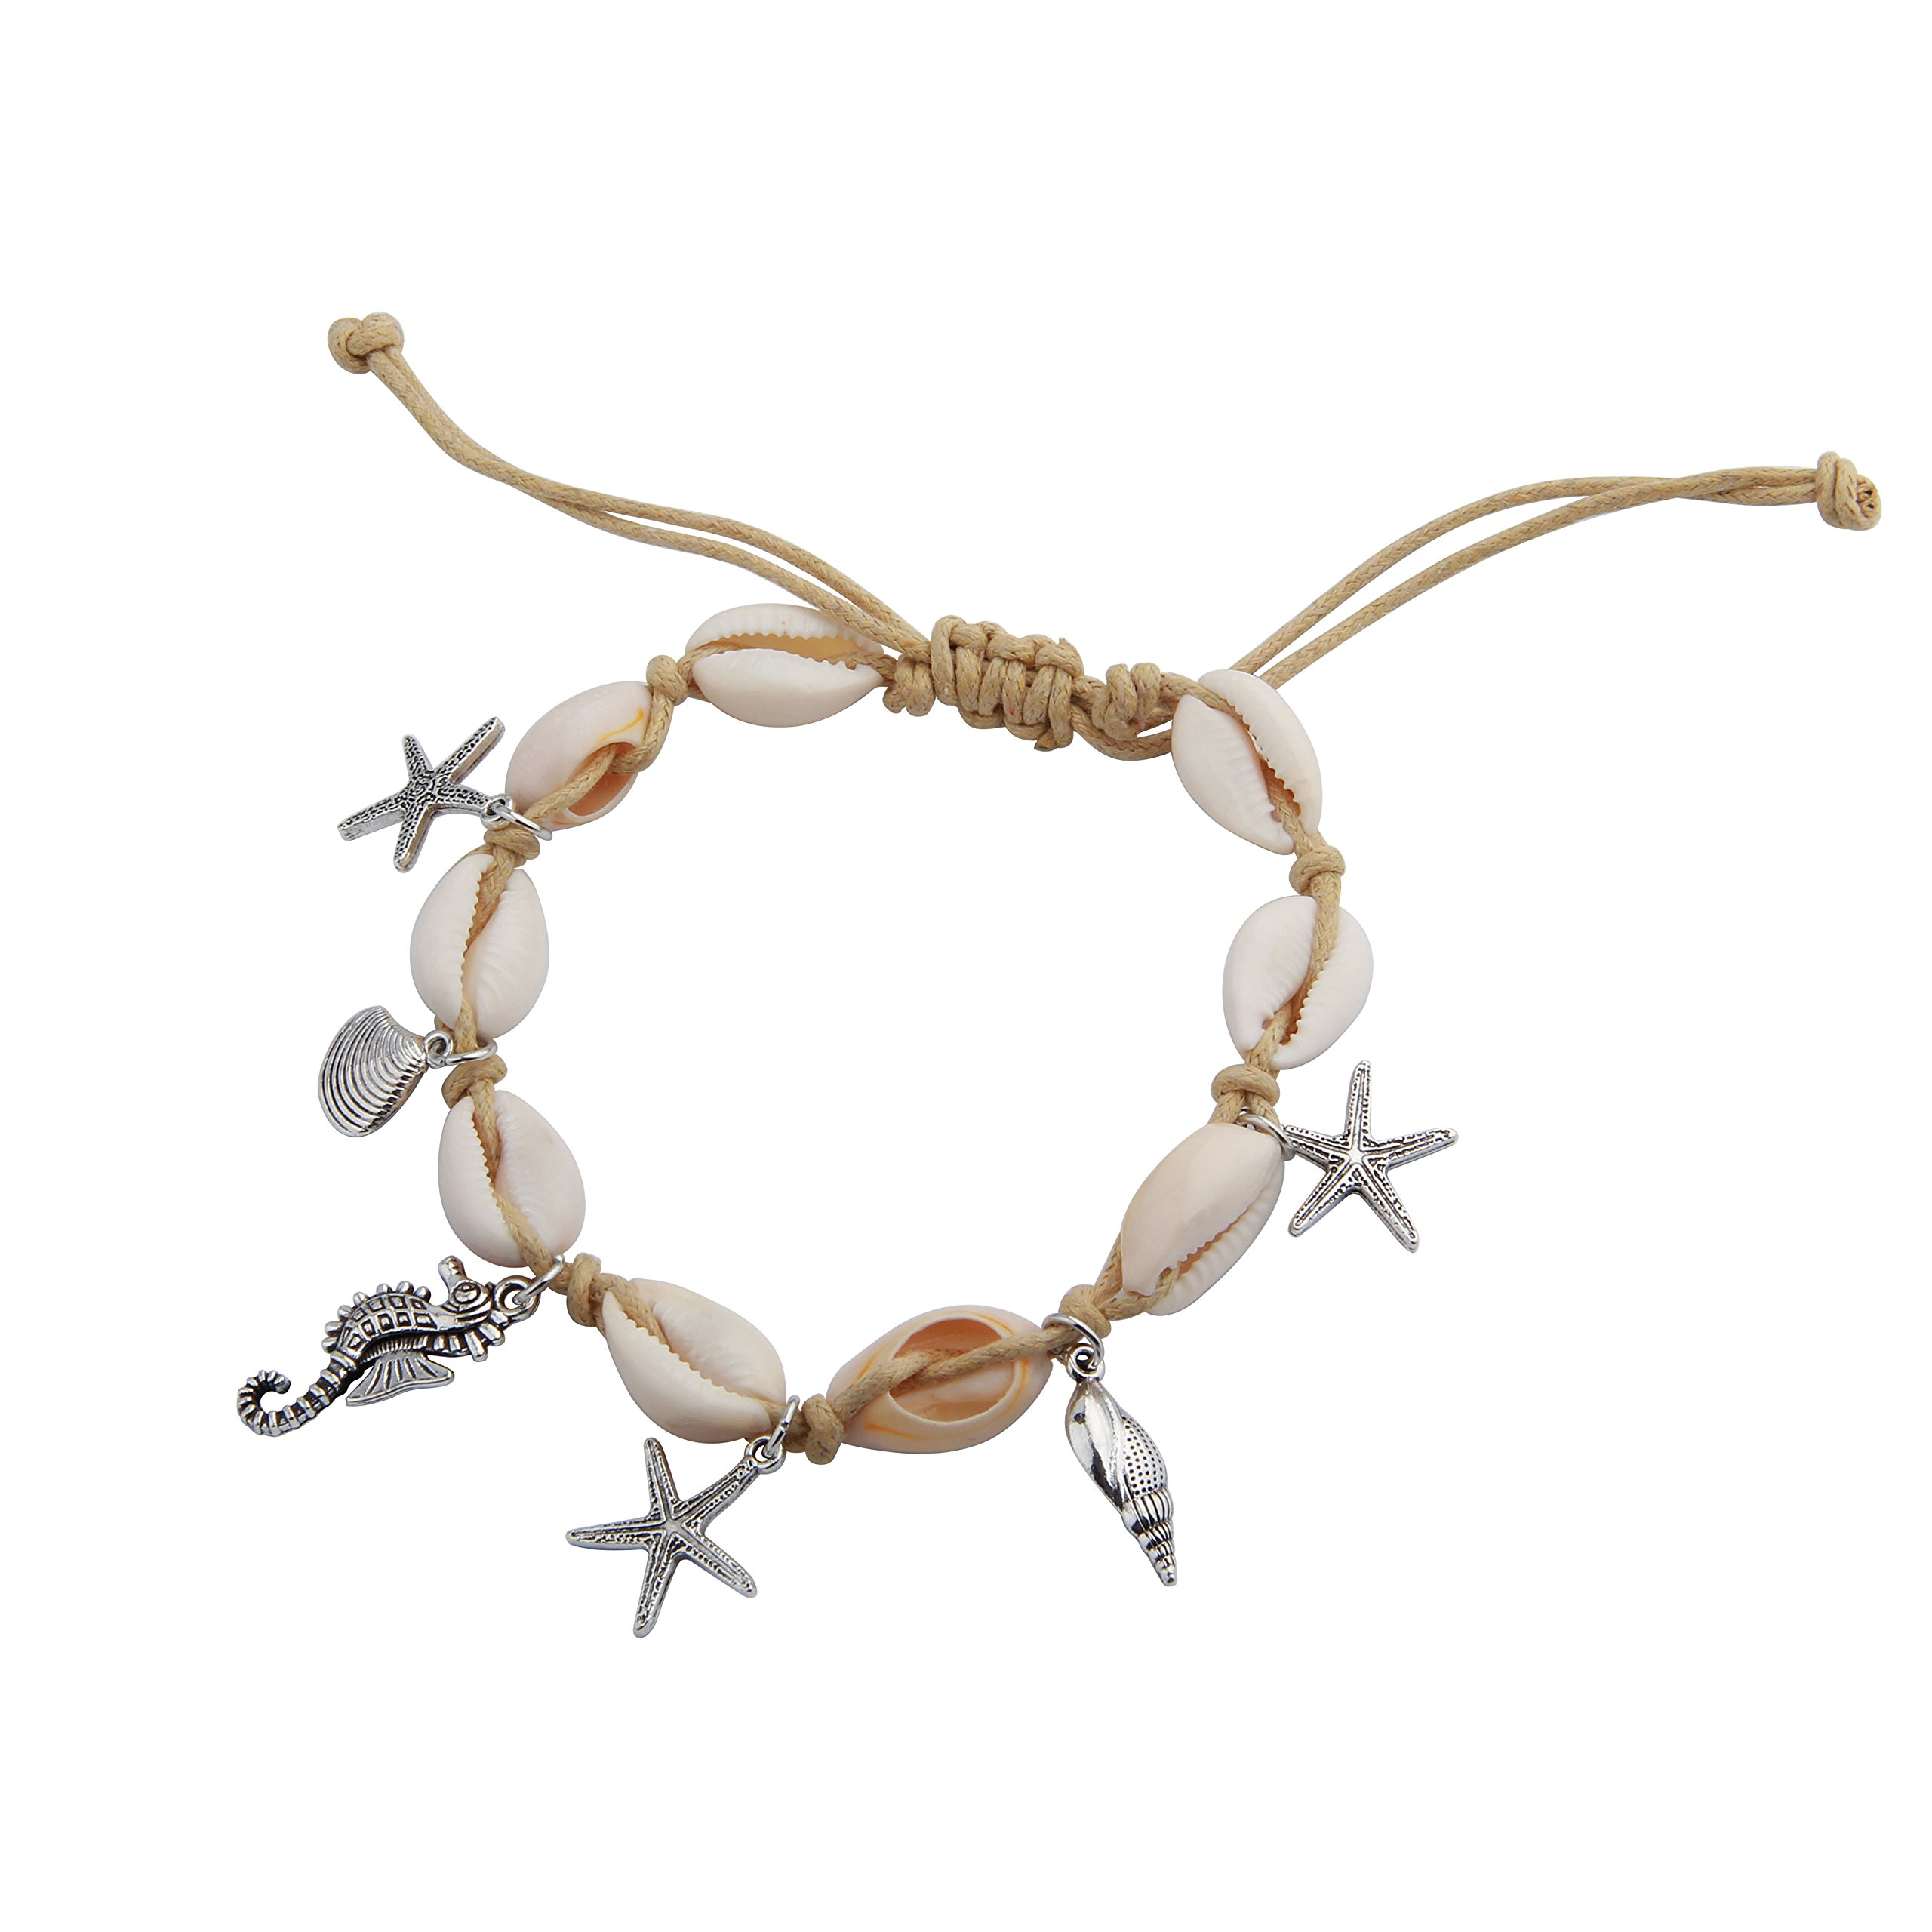 RQIER Starfish Charm and Shell Charm Anklet Bracelet Barefoot Sandals Beach Foot Jewelry(BIG Shell)